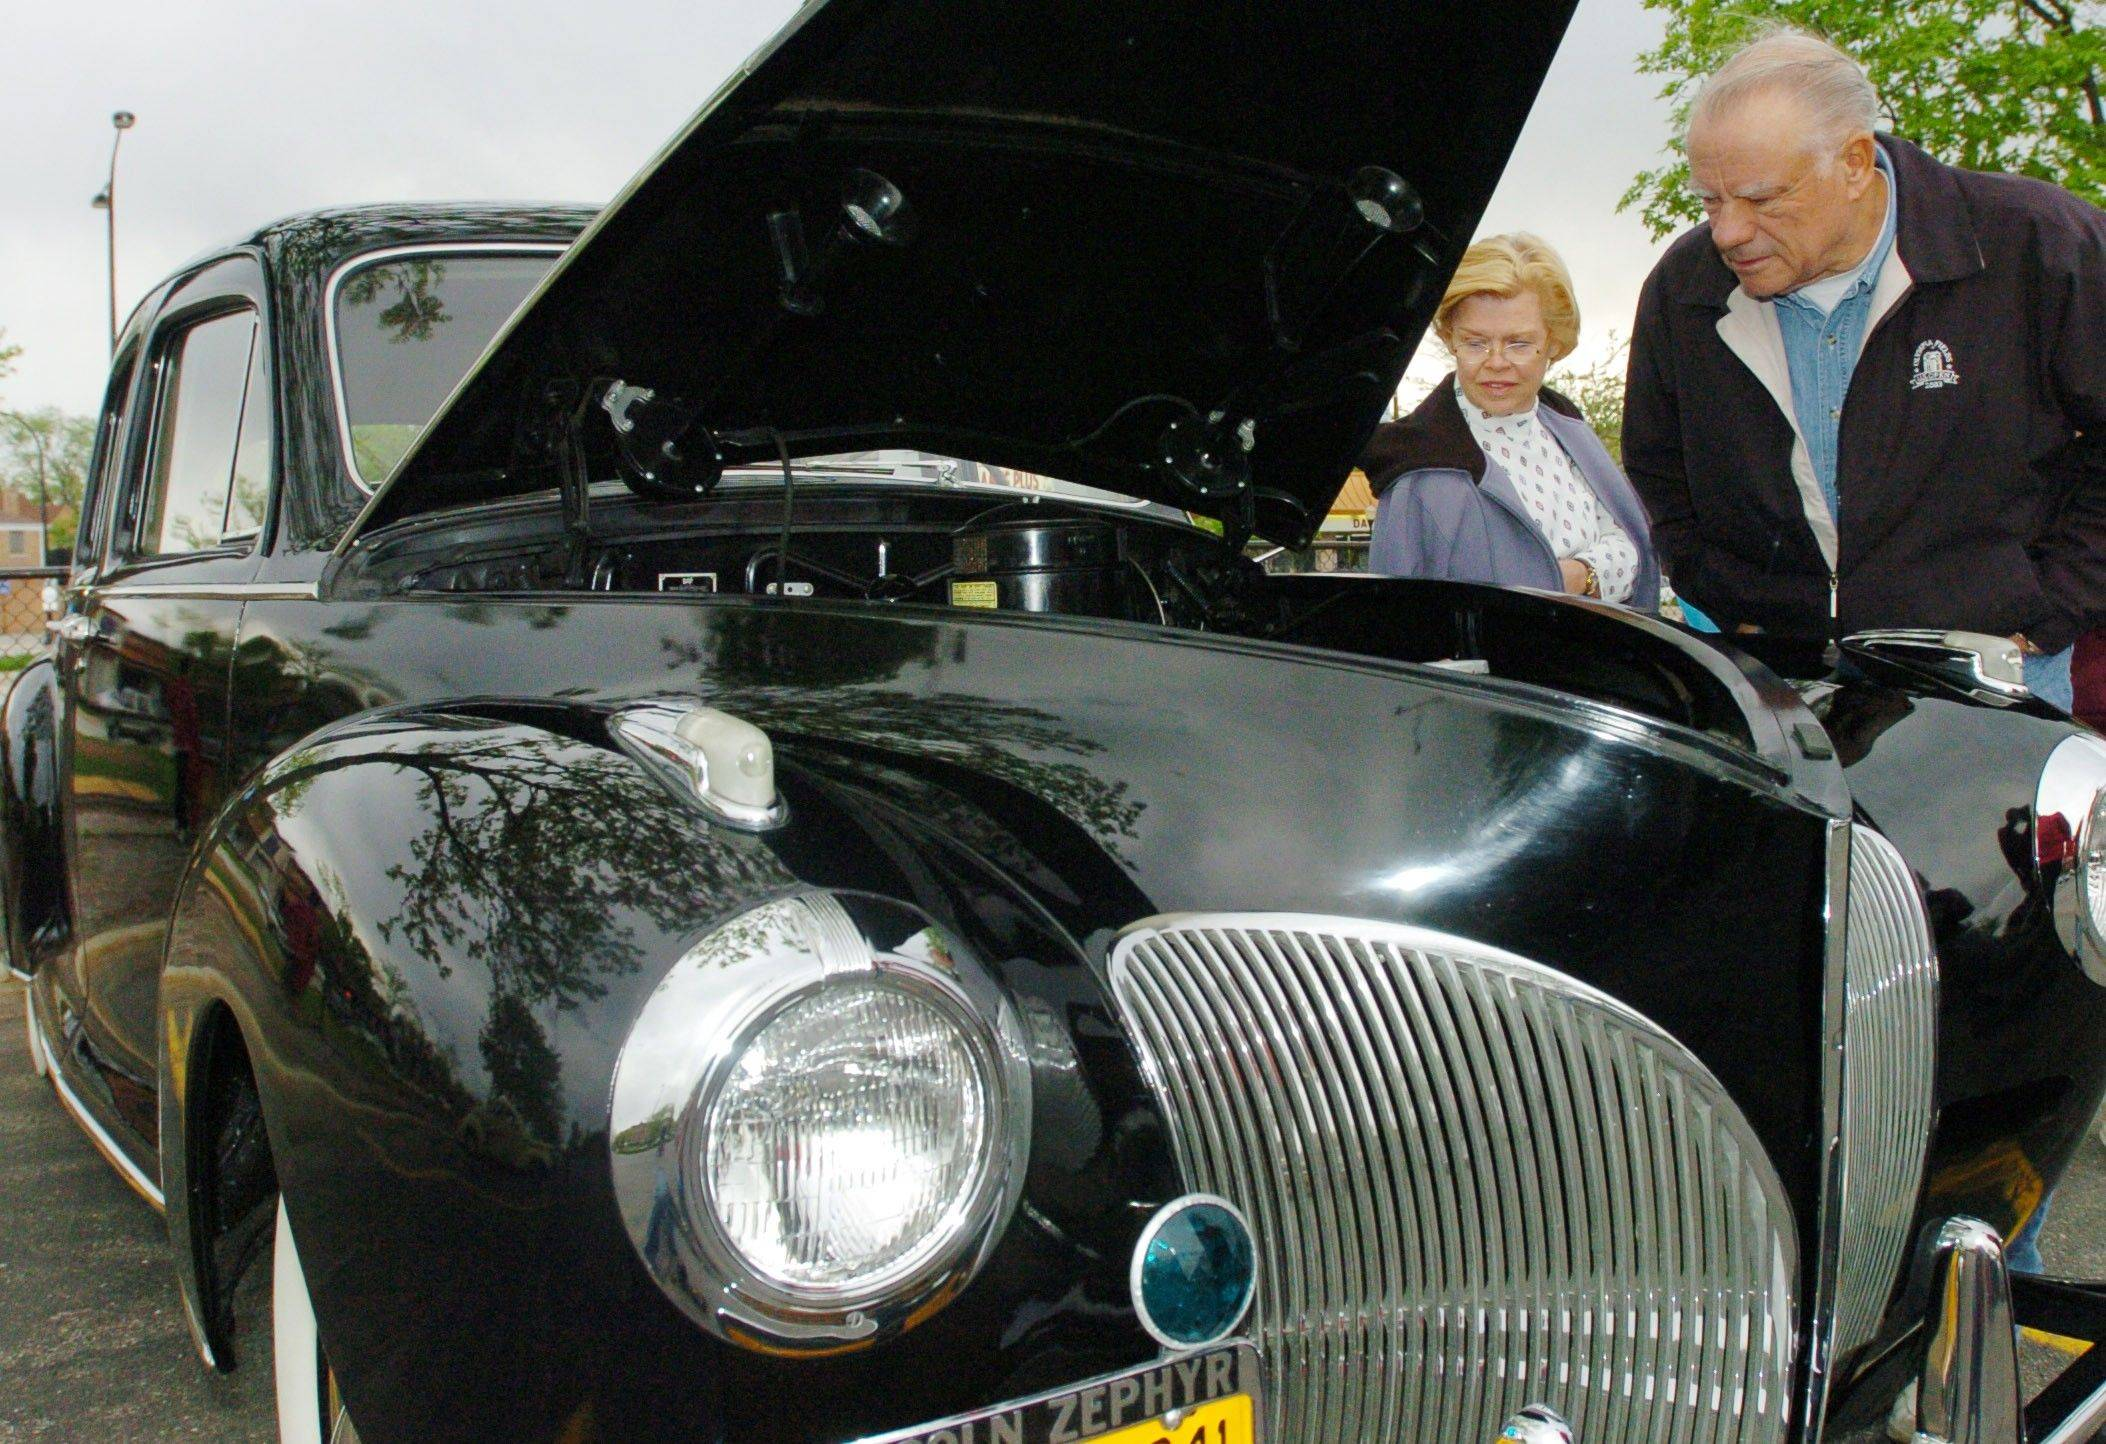 In 2008, two visitors stop to look at a 1941 Lincoln Zephyr belonging to Don Reinhardt of Chicago.